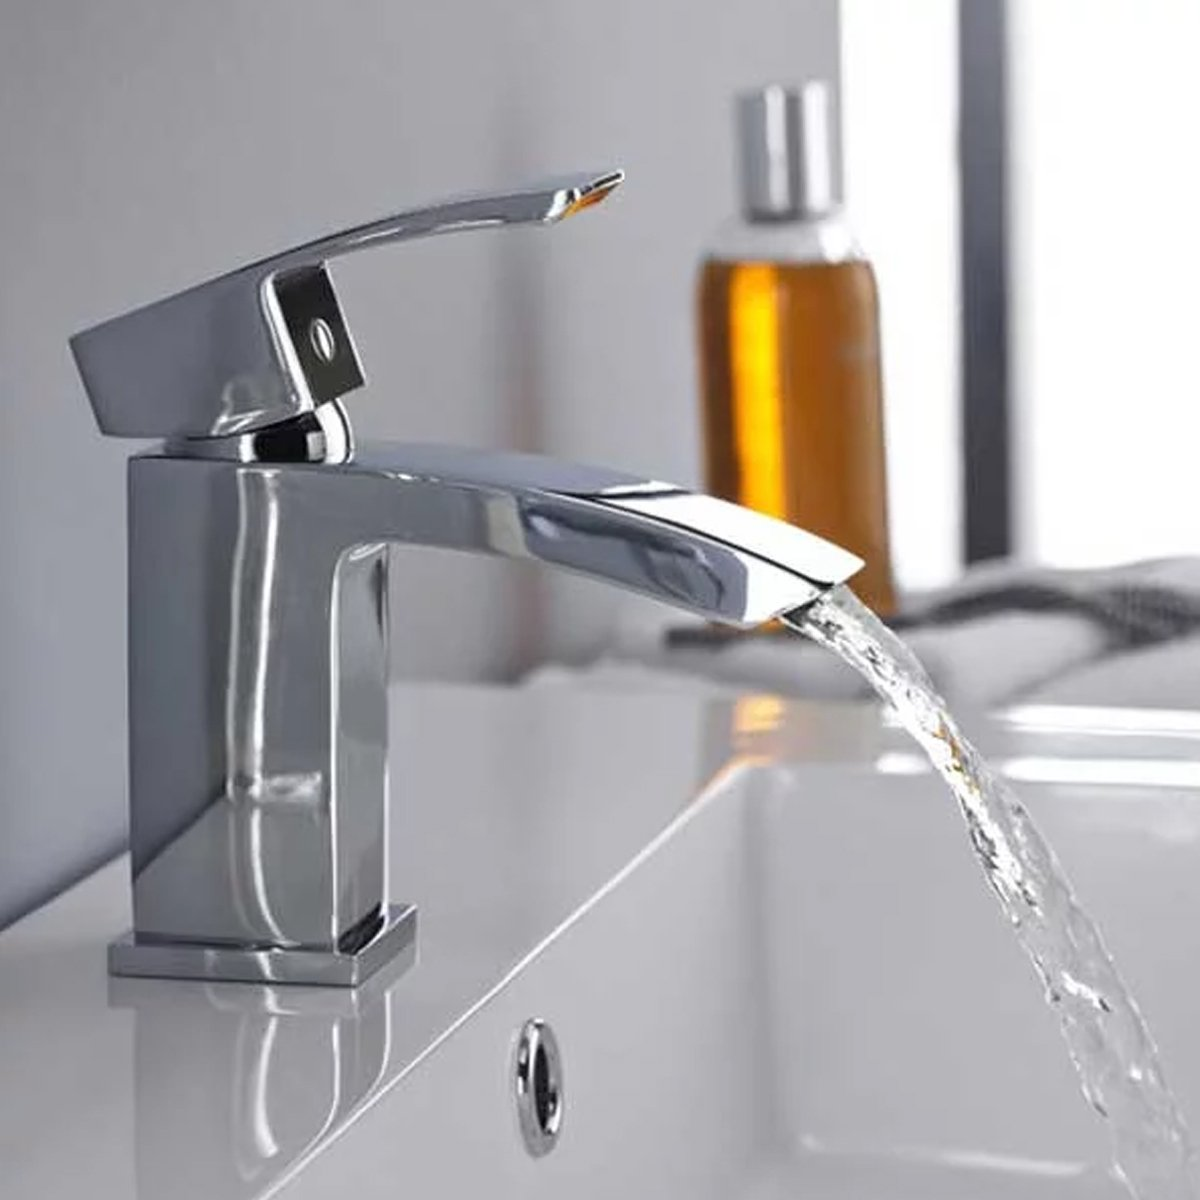 Ultra Vibe Mono Basin Mixer Tap and Bath Filler Tap Pillar Mounted, Chrome